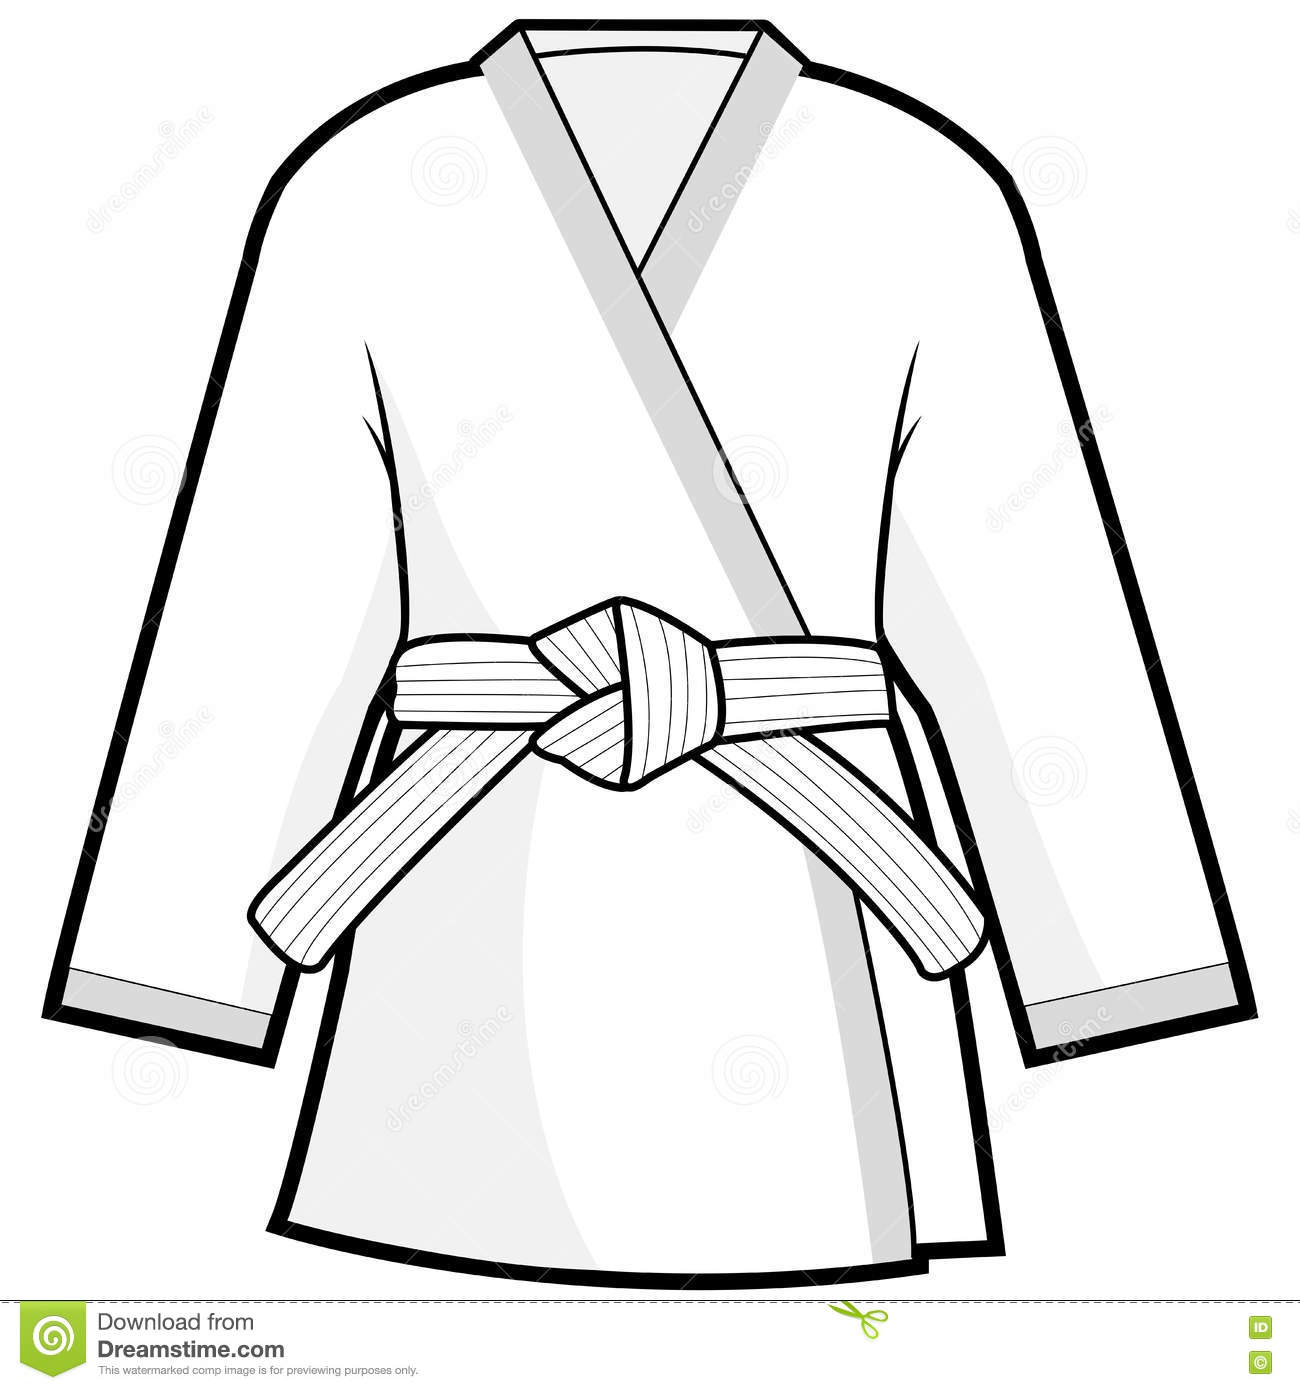 Image Result For Download Video Jujitsu